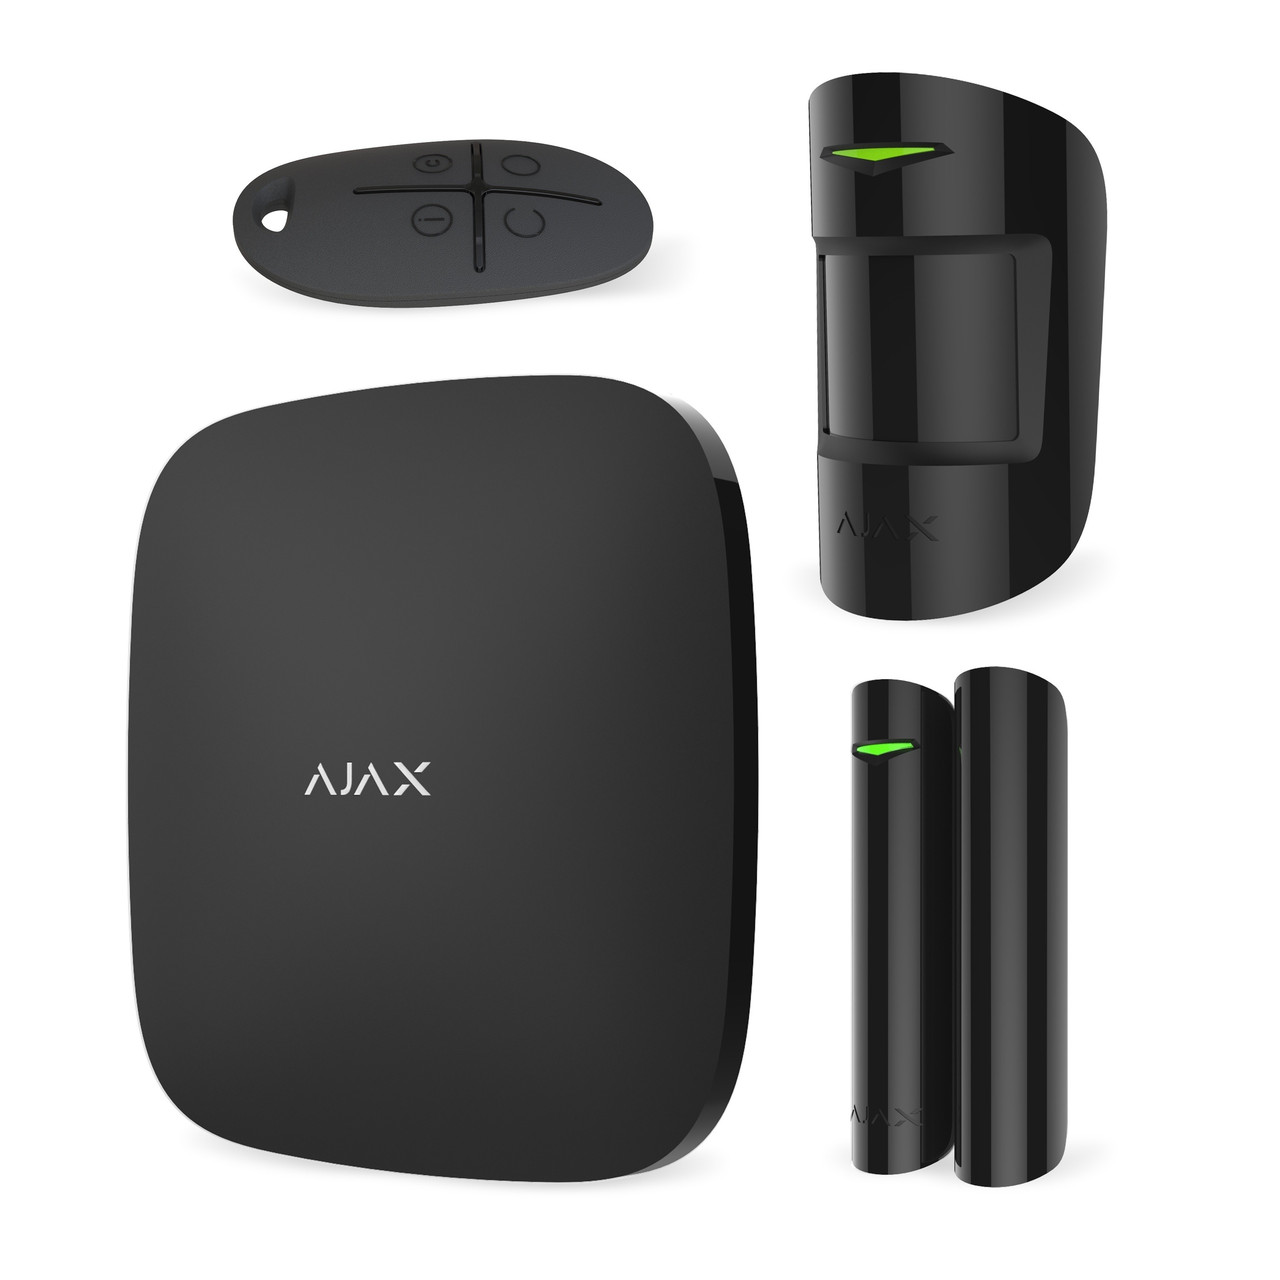 Комплект сигнализации Ajax StarterKit Black (Черный)